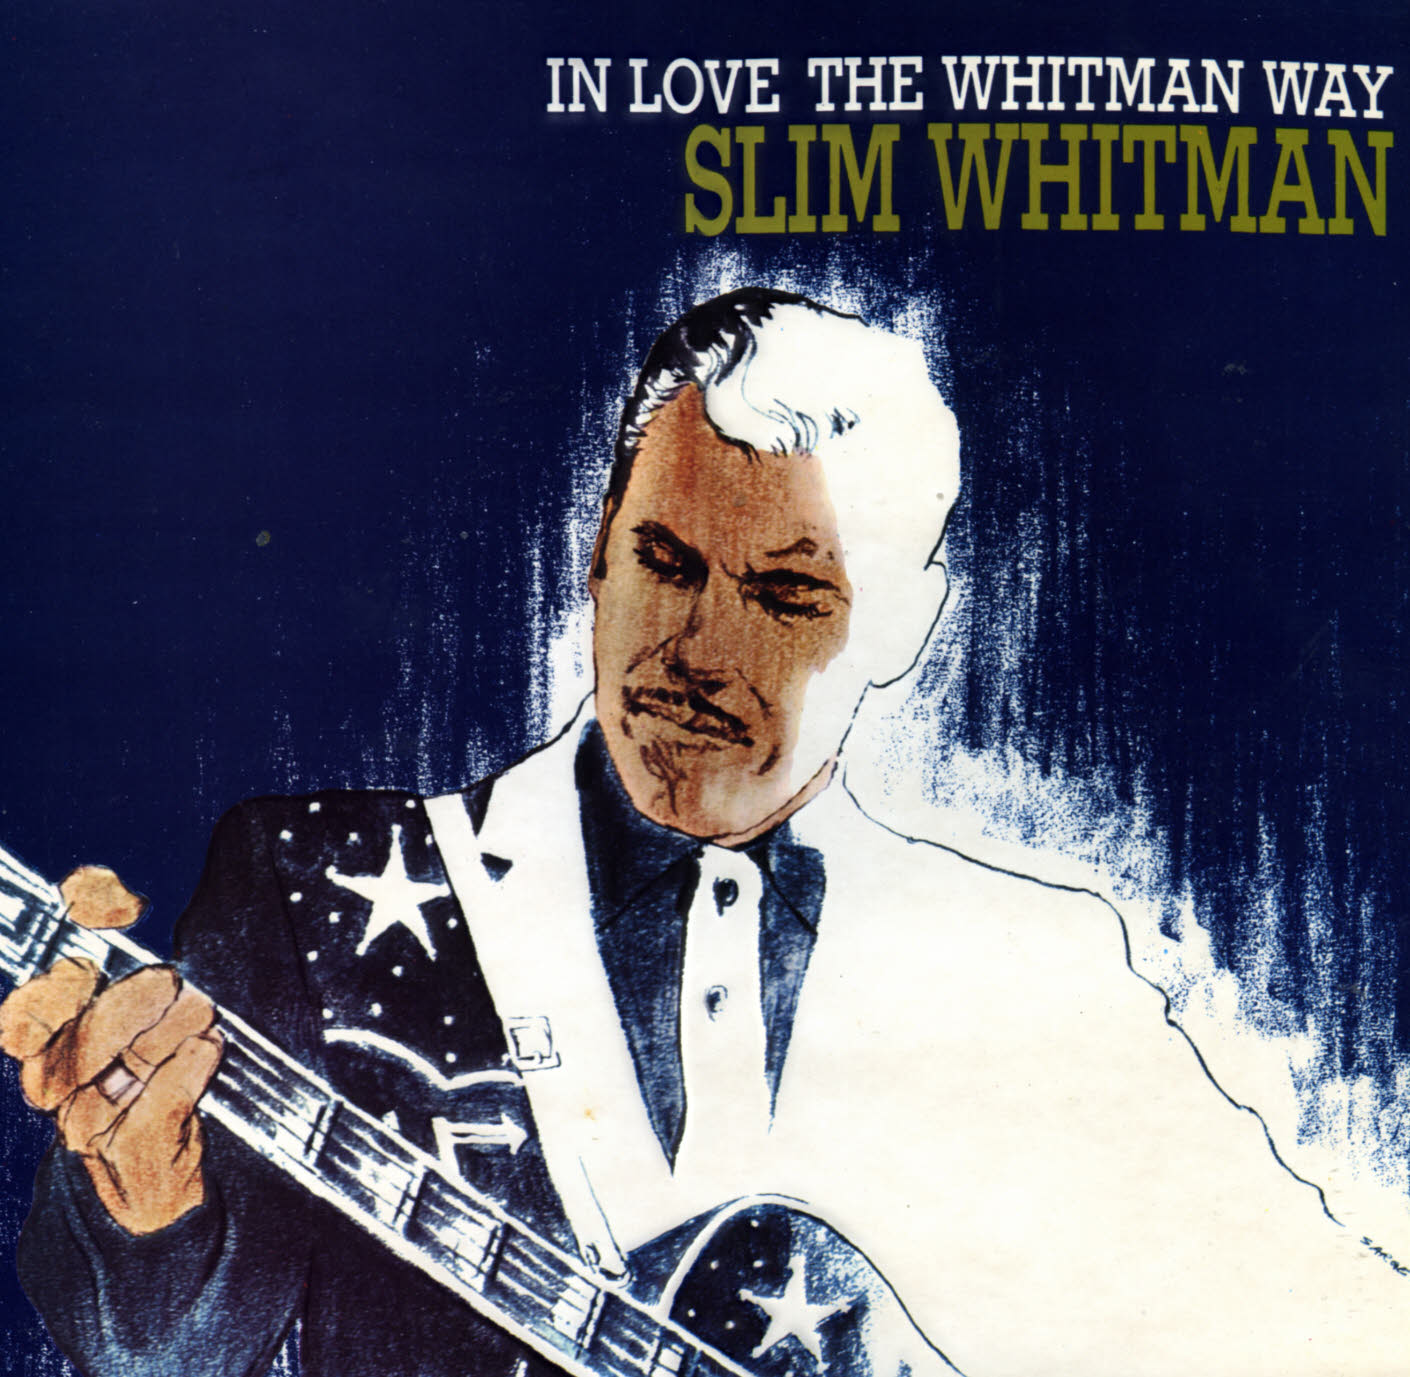 meet whitman singles Listen to albums and songs from slim whitman join napster and access full-length songs on your phone, computer or home audio device.